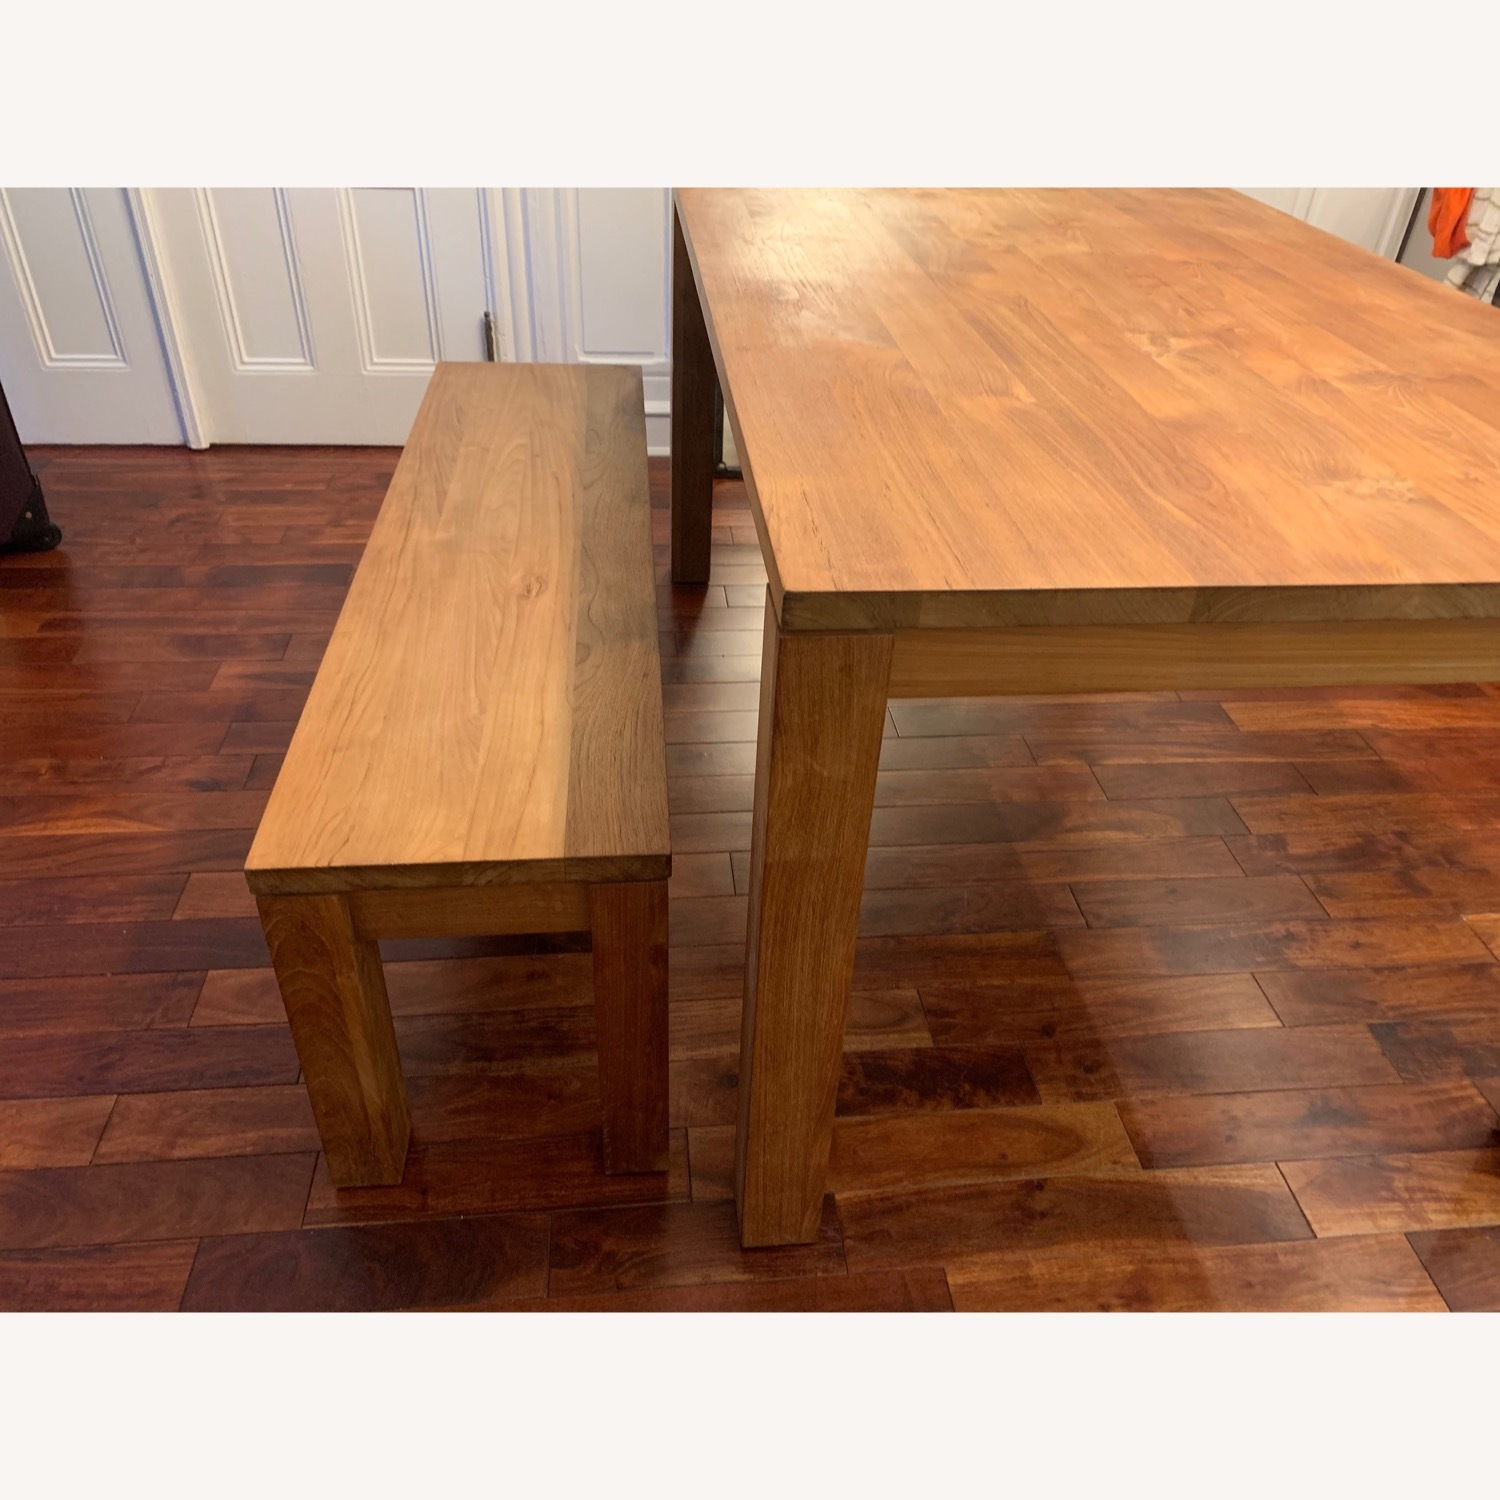 Crate & Barrel Solid Wood Table - image-2